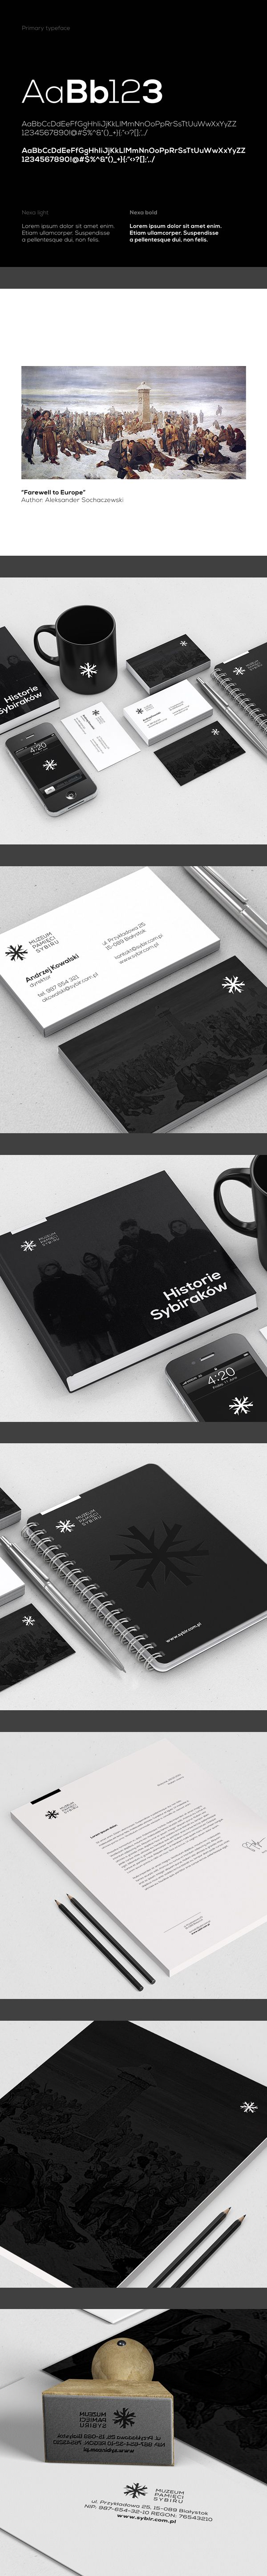 Memorial Museum of Siberia - branding by Łukasz Ociepka, via Behance